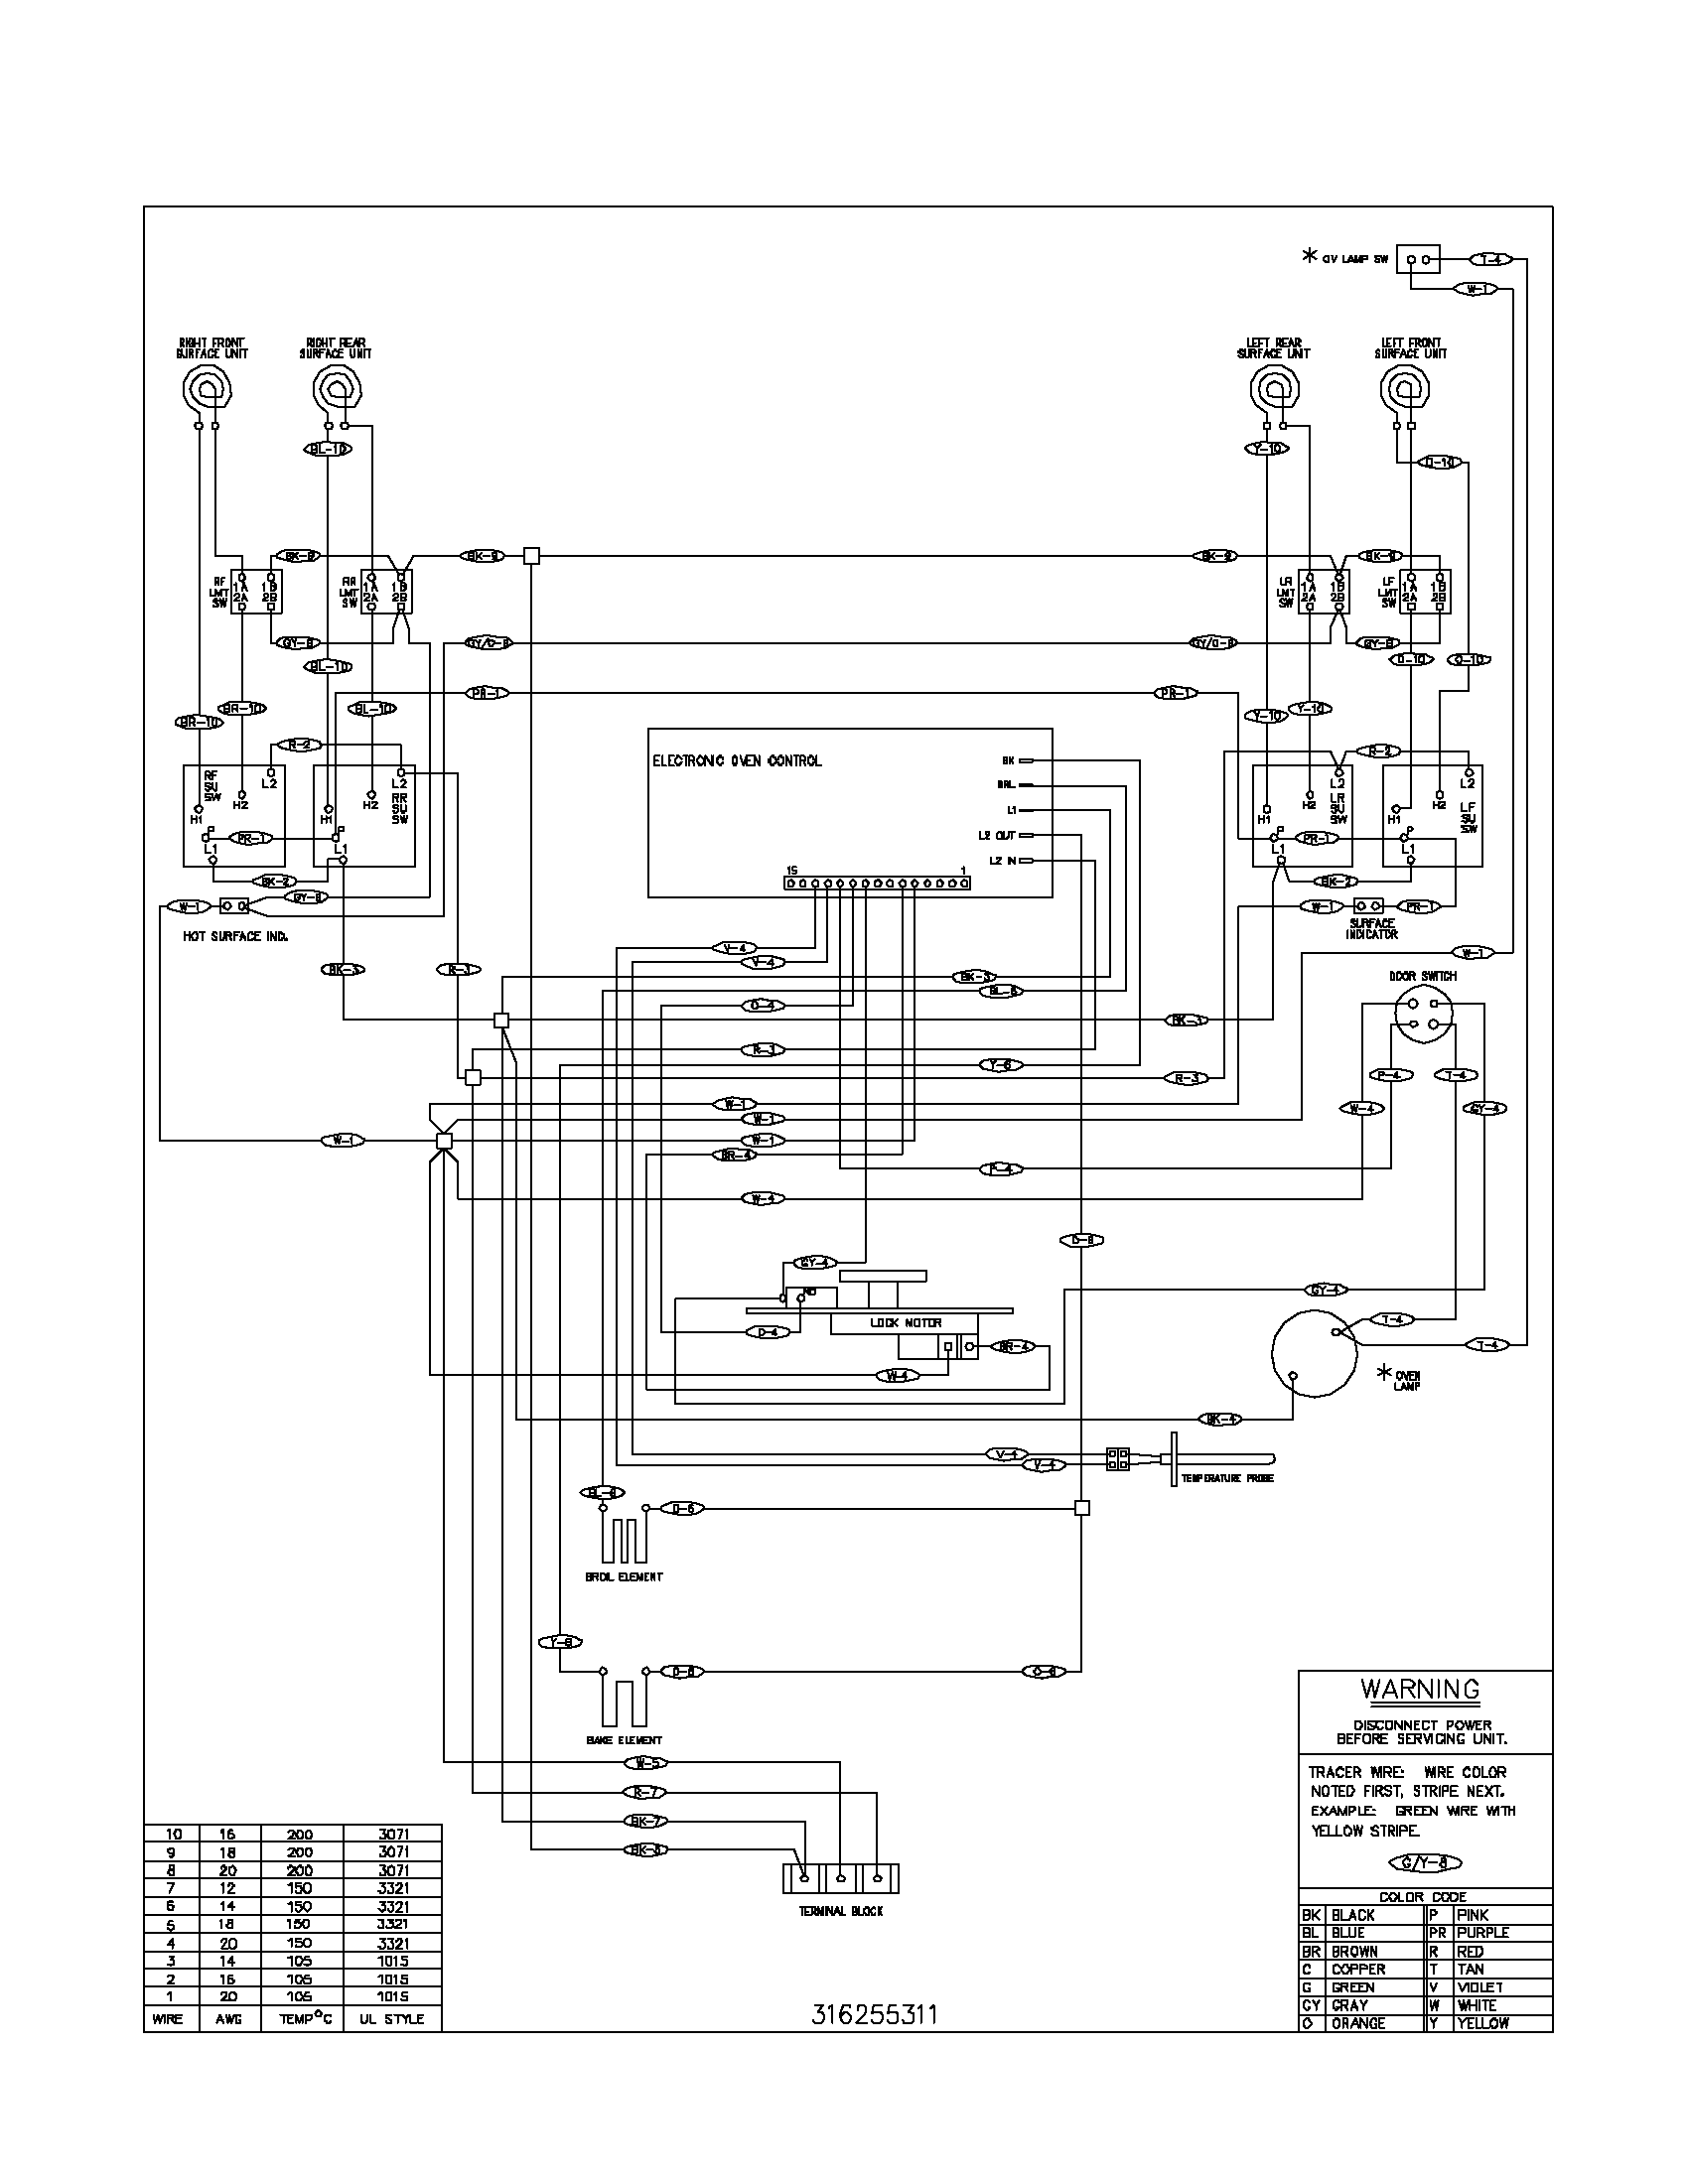 a range plug wiring diagram oven